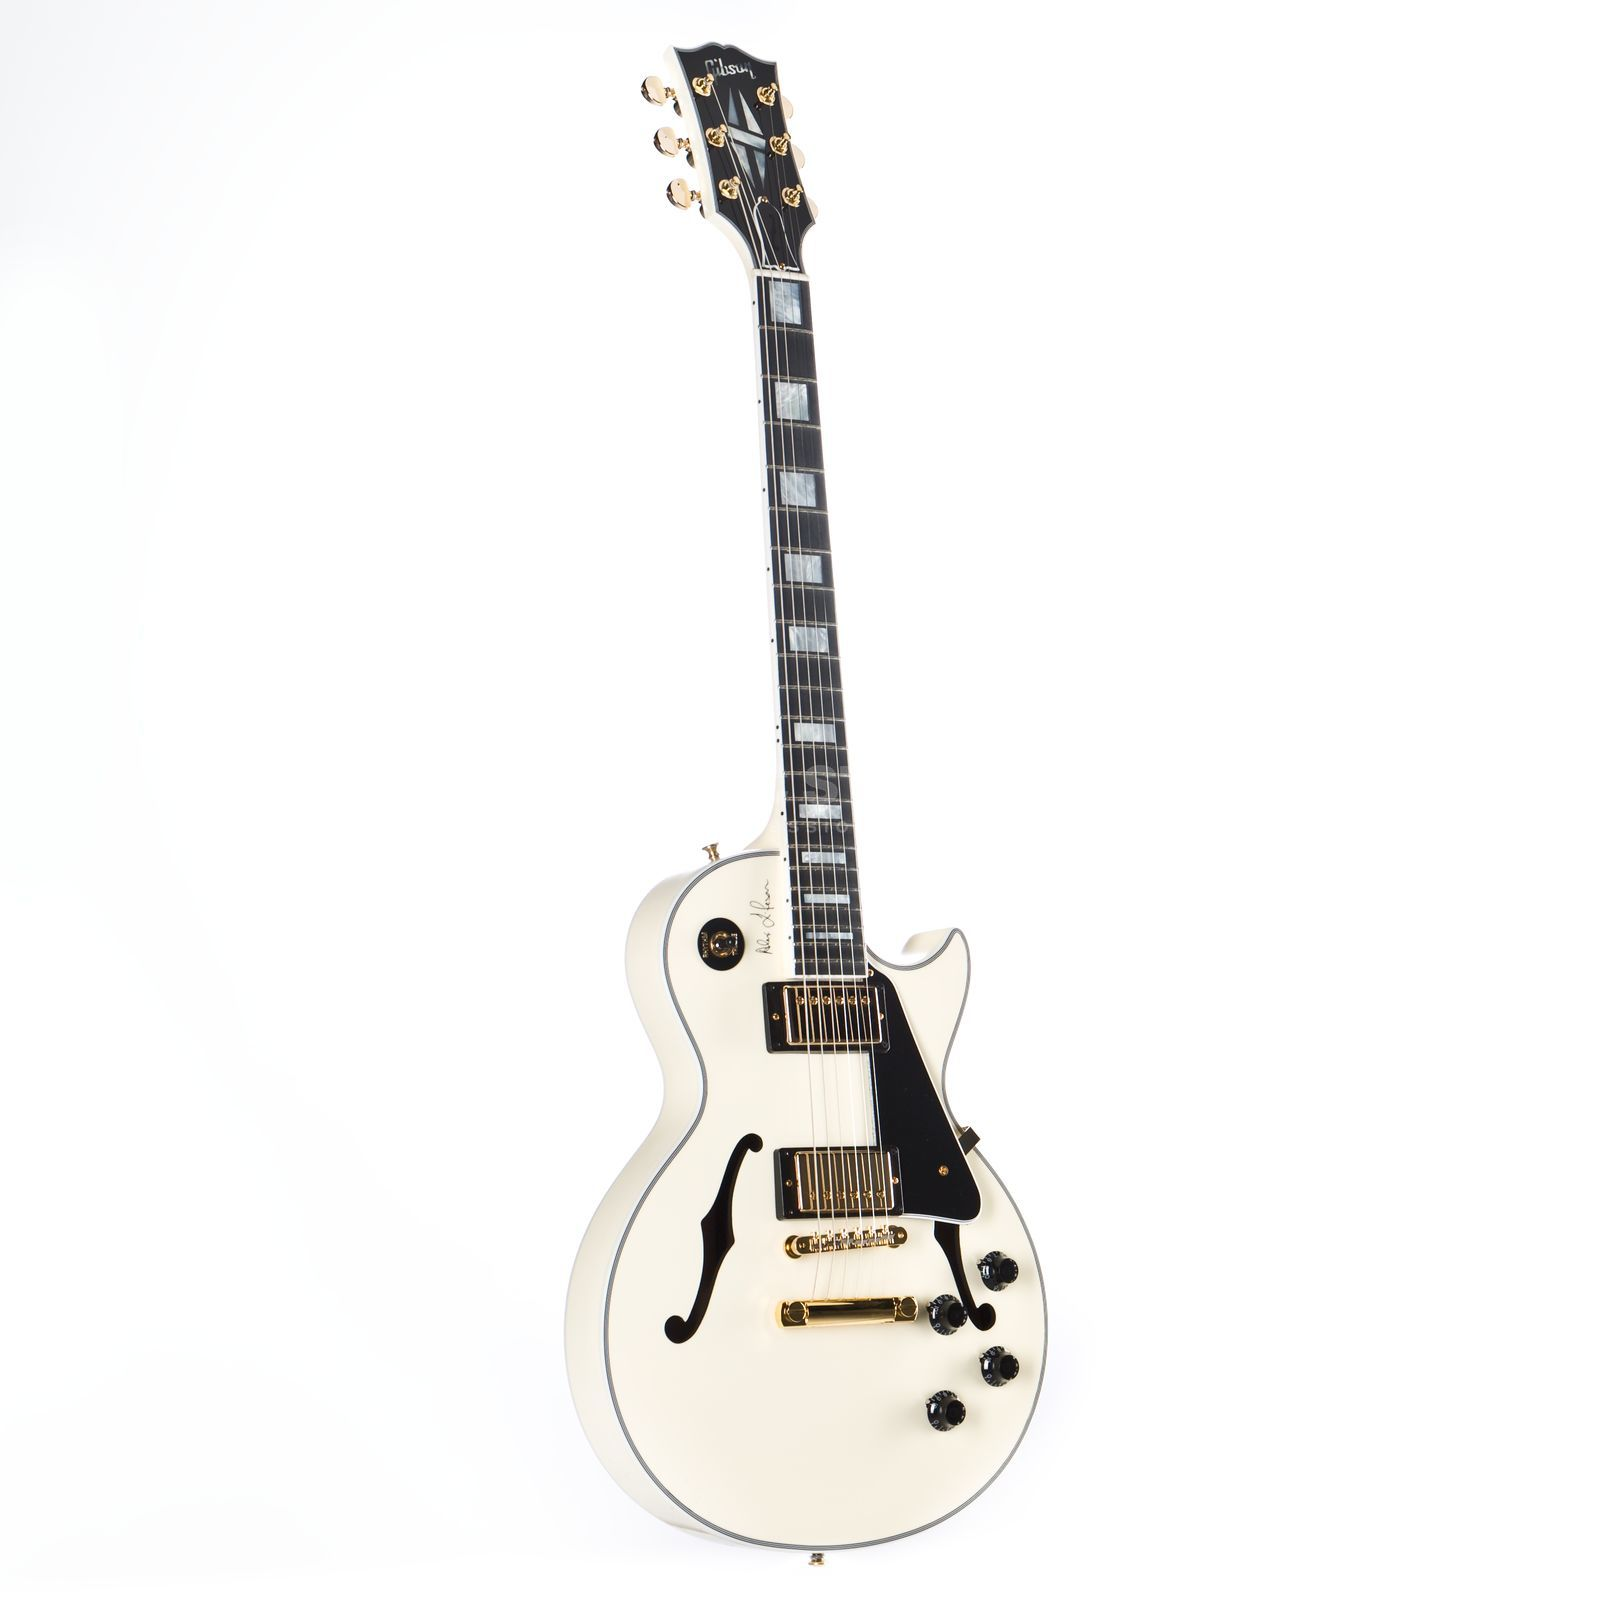 Gibson Alex Lifeson ES-Les Paul Classic White #87 of 200 Изображение товара